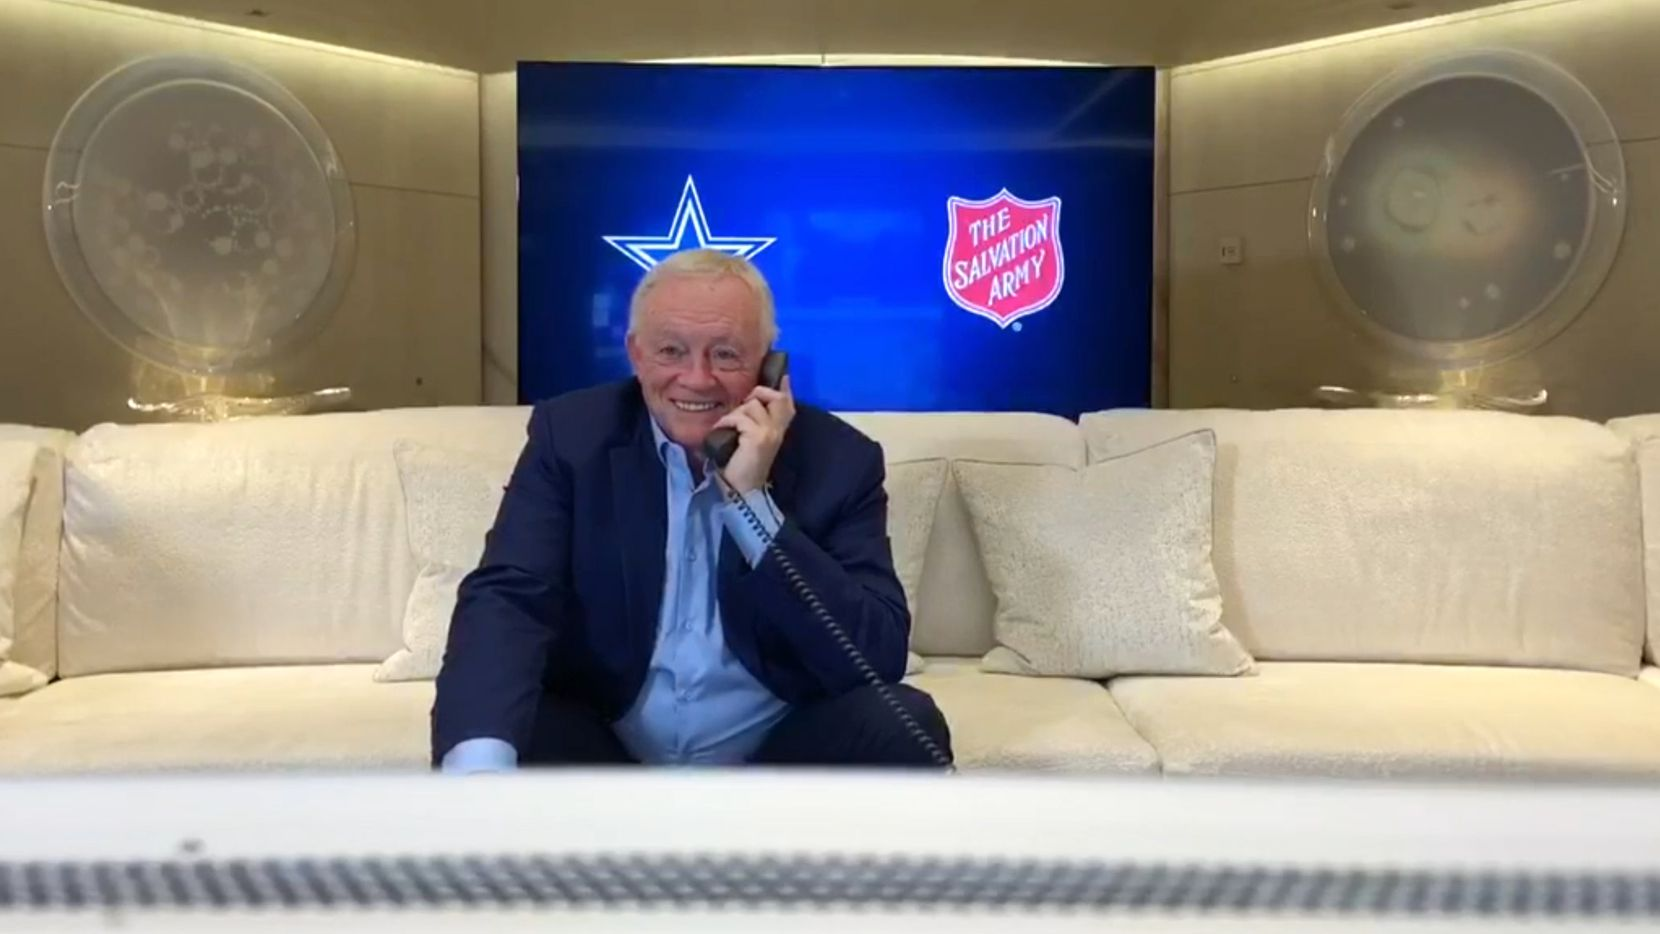 Screen capture of Dallas Cowboys owner and general manager Jerry Jones as he talks on the phone as the Cowboys make CeeDee Lamb of Oklahoma the 17th pick in the first round of the NFL Draft on Thursday, April 23, 2020. Due to the coronavirus pandemic the NFL Draft was held virtually. (Dallas Cowboys)